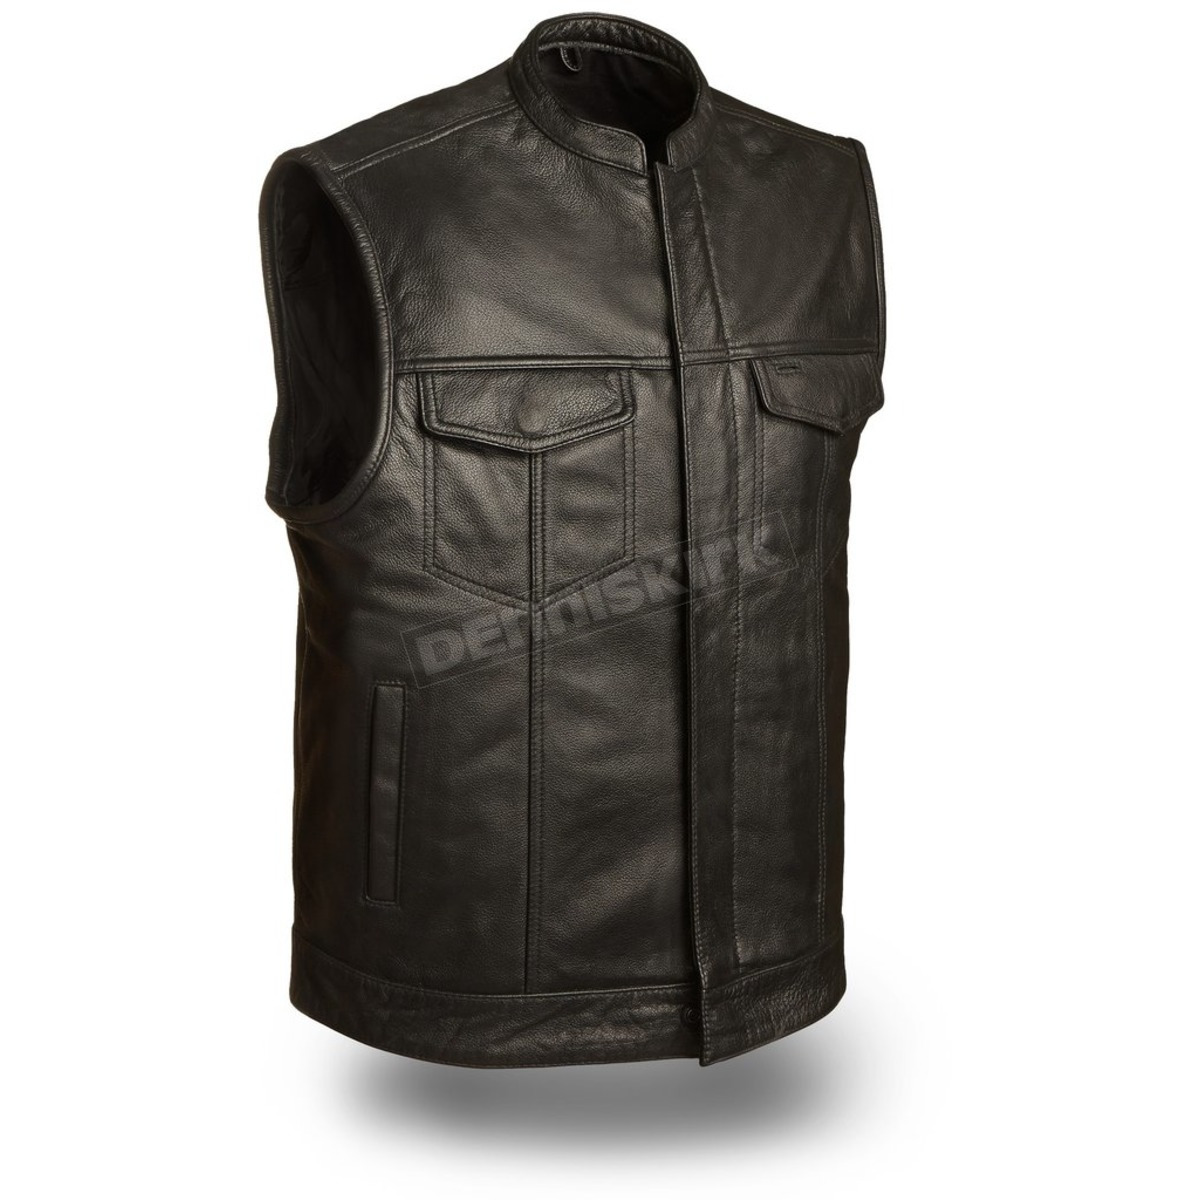 26a5a802e Black Blaster Leather Vest - FMM-690-BSF-M